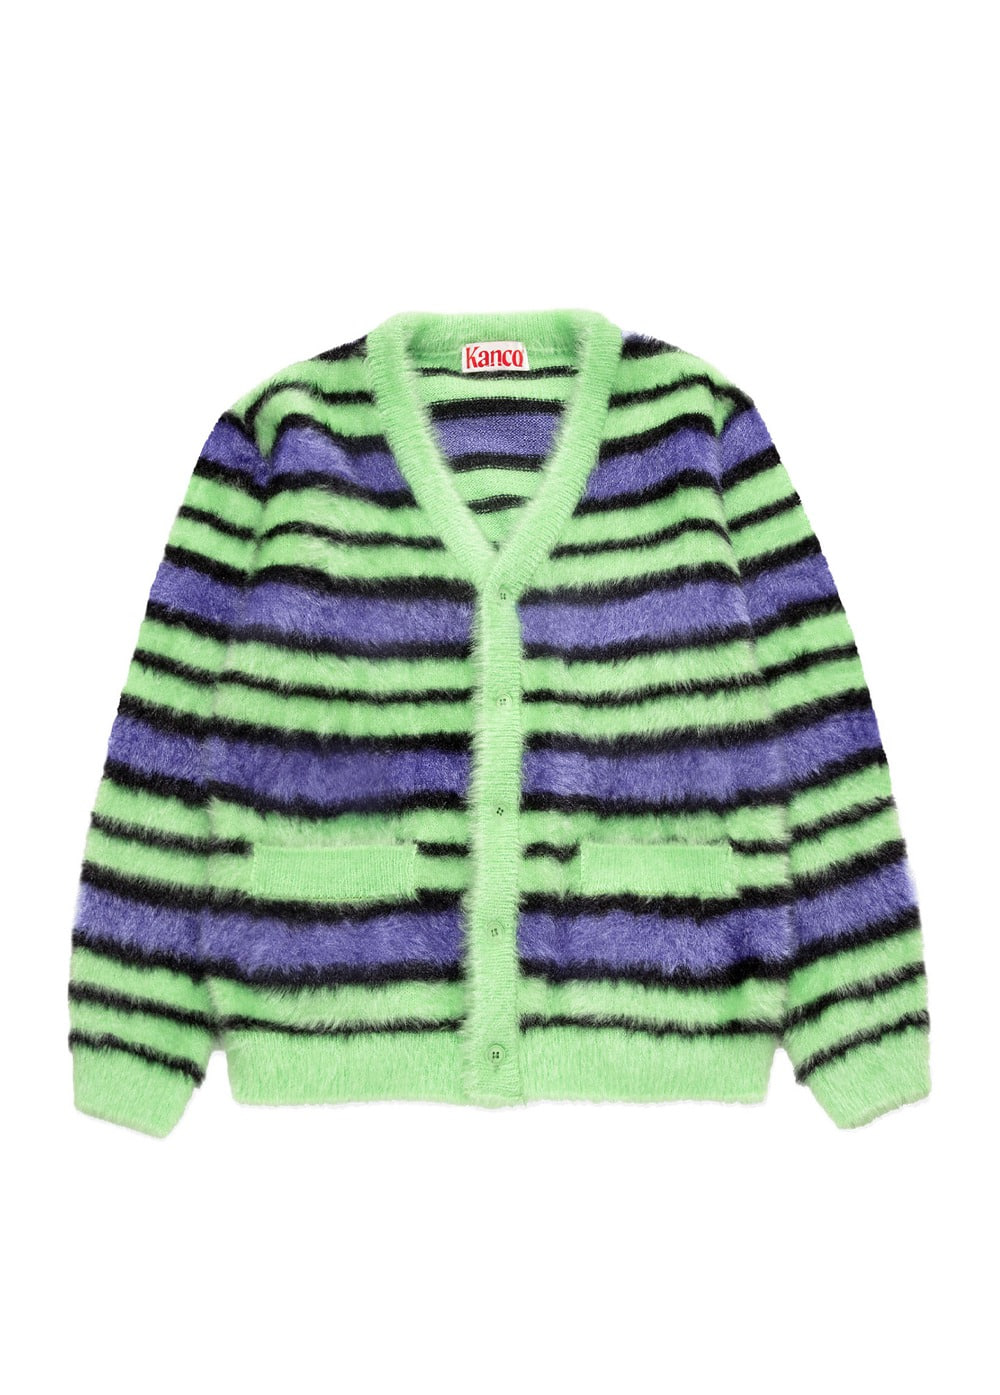 KANCO STRIPE CARDIGAN green/purple blue